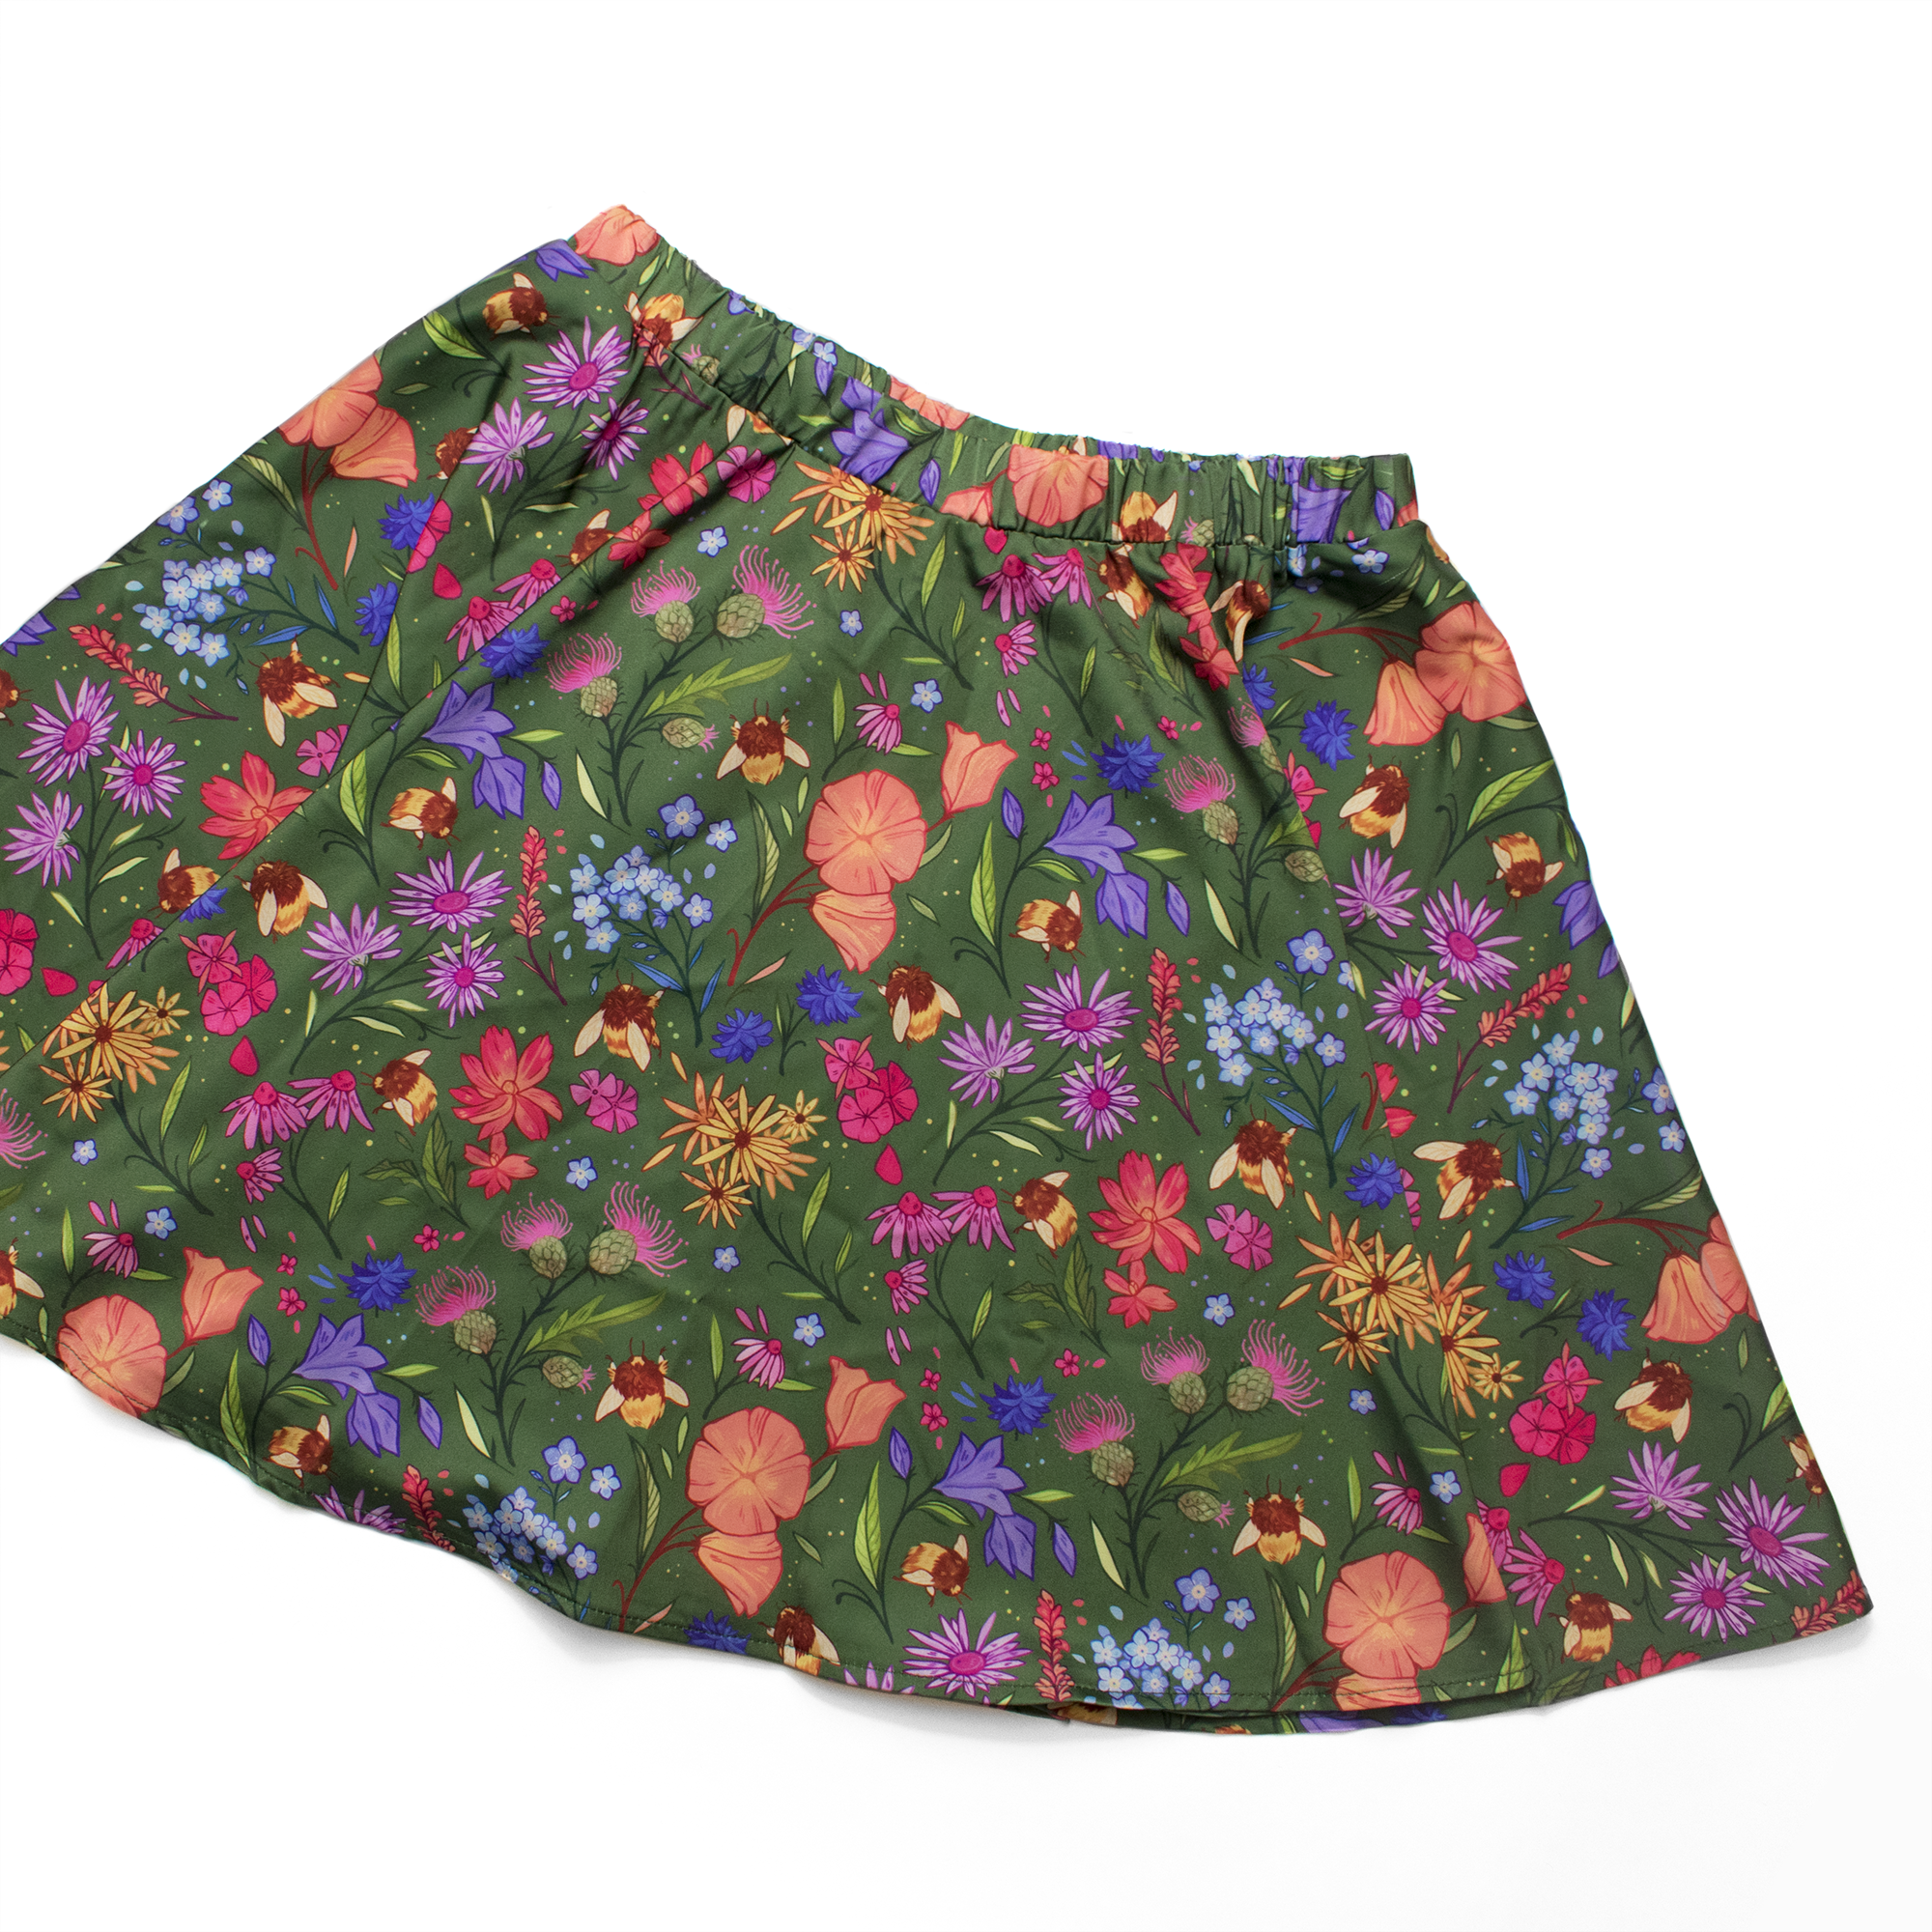 [PREORDER] Secret Garden: Bee & Wildflowers Mini Skirt